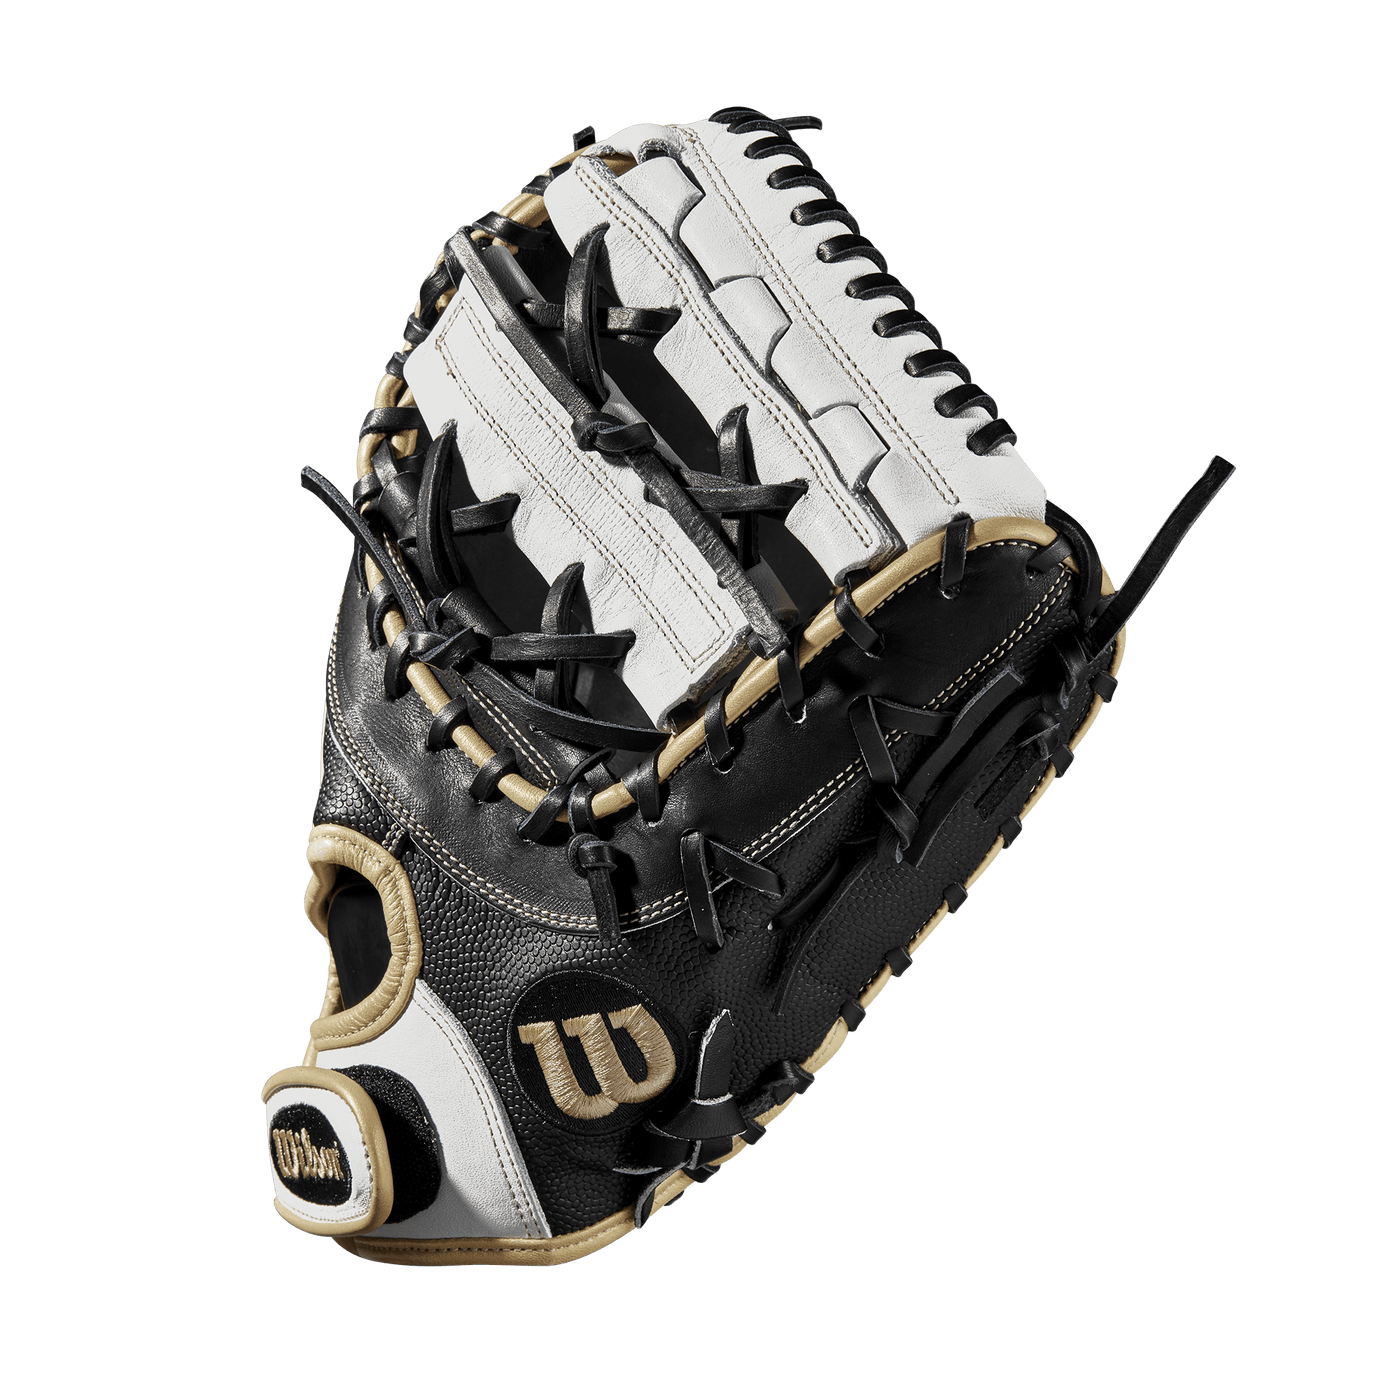 536cb01a4f5 ... Web View of Wilson A2000 SuperSkin 12